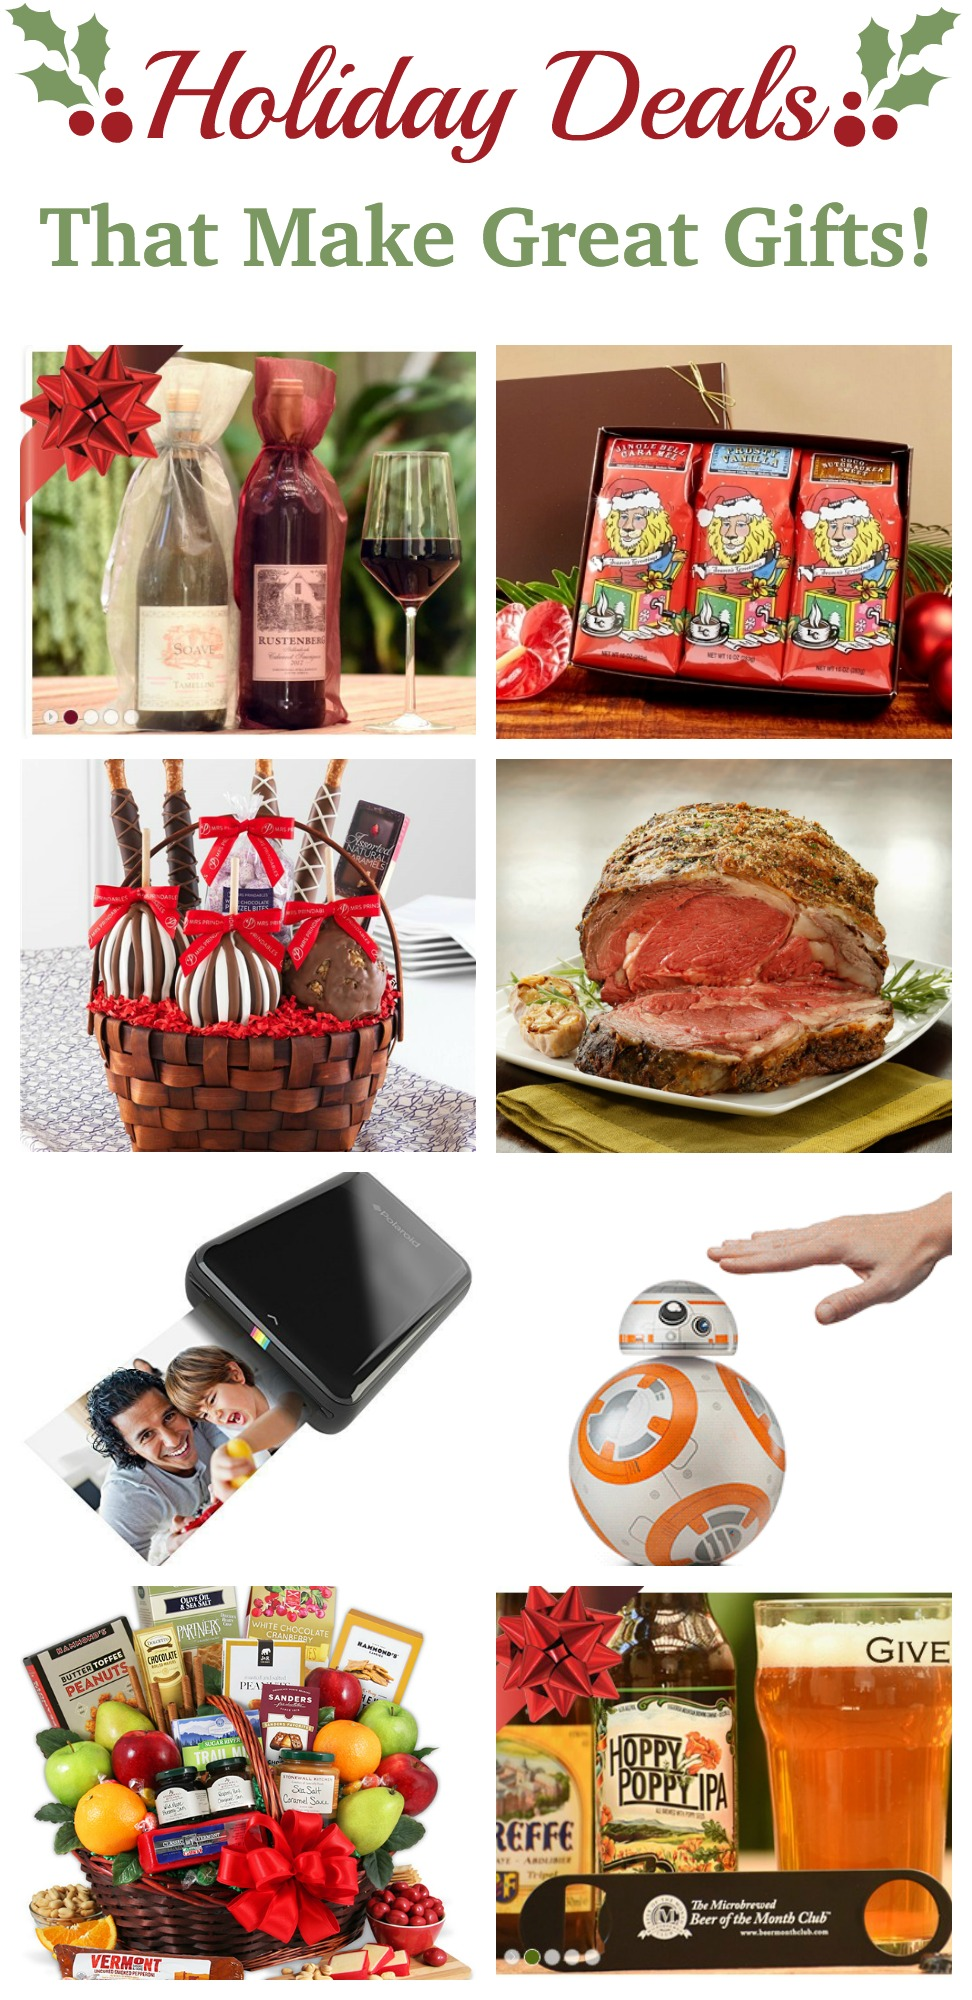 Great Holiday Deals that also make awesome gifts! We'd love anything on this list! #gift